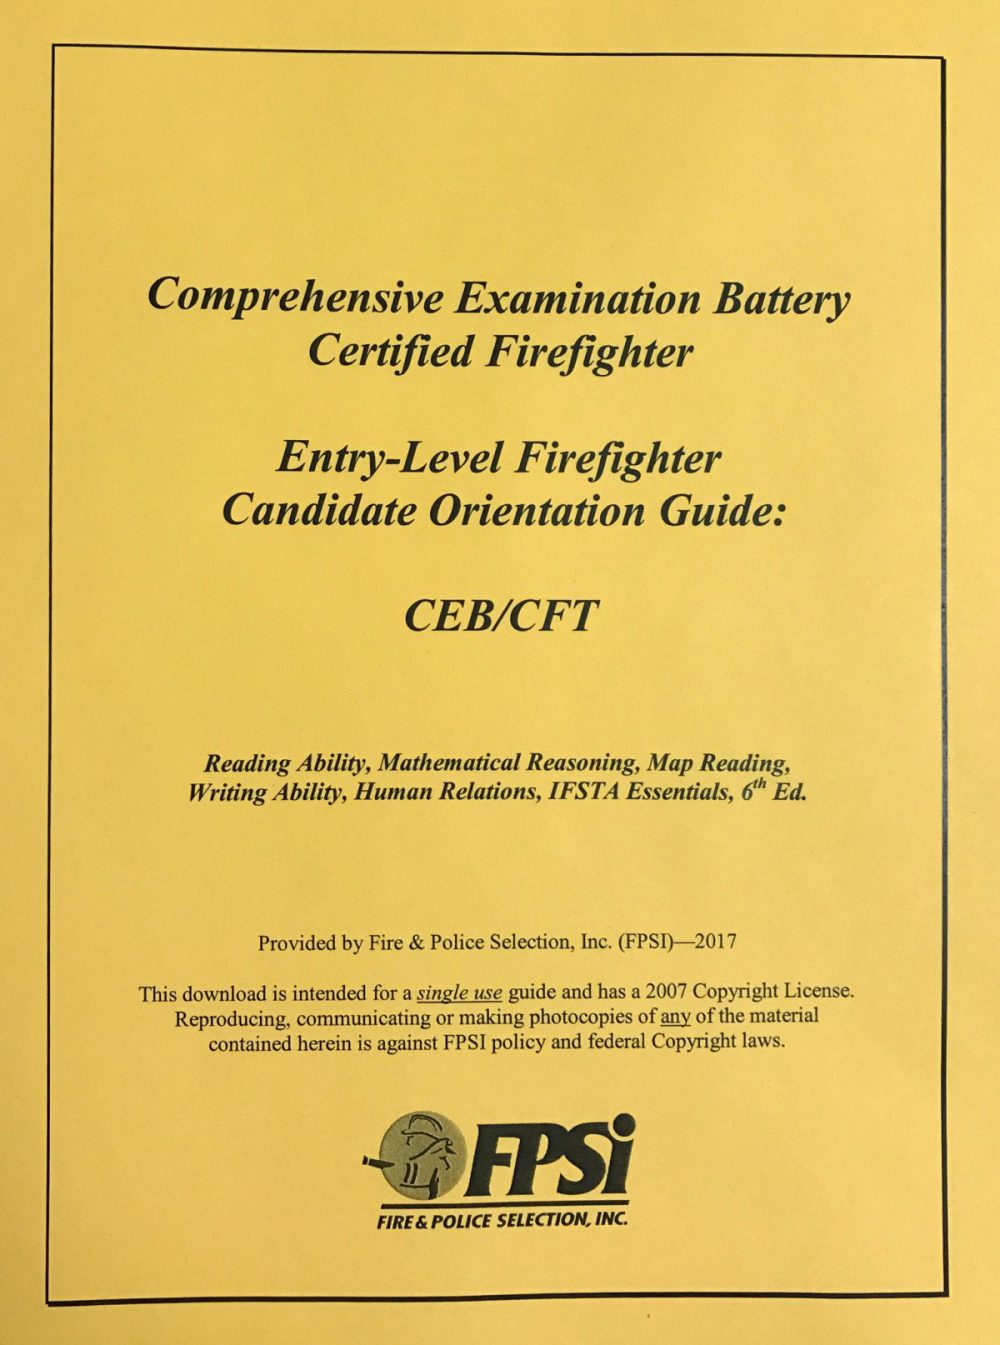 tallahassee fire department ceb cft candidate orientation guide rh fpsi com Flood Insurance Flood Insurance